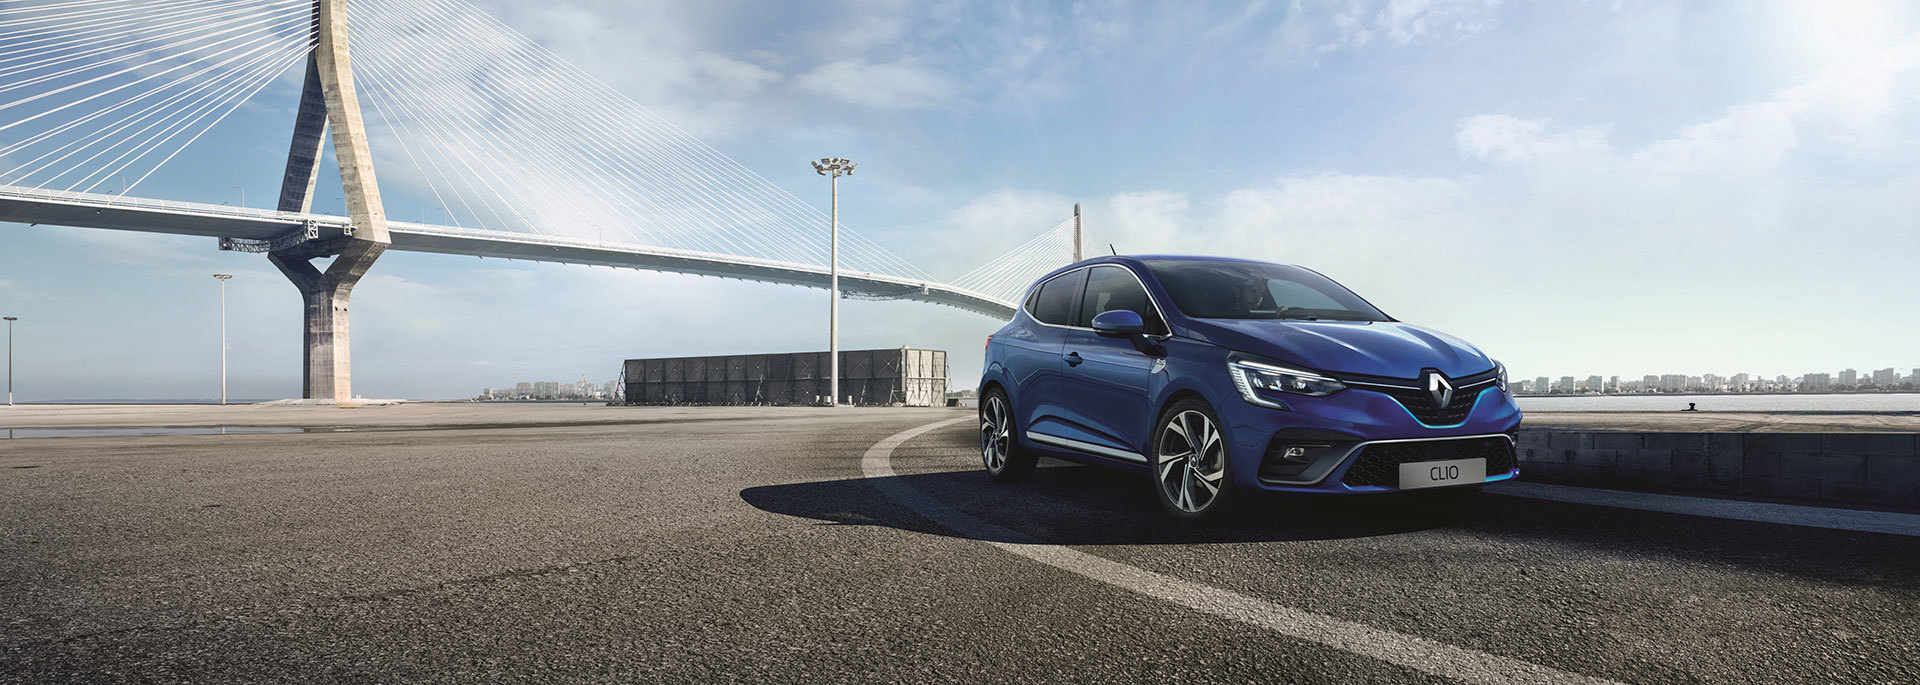 Renault Clio Rs Line 2019 Frontal Exterior 04